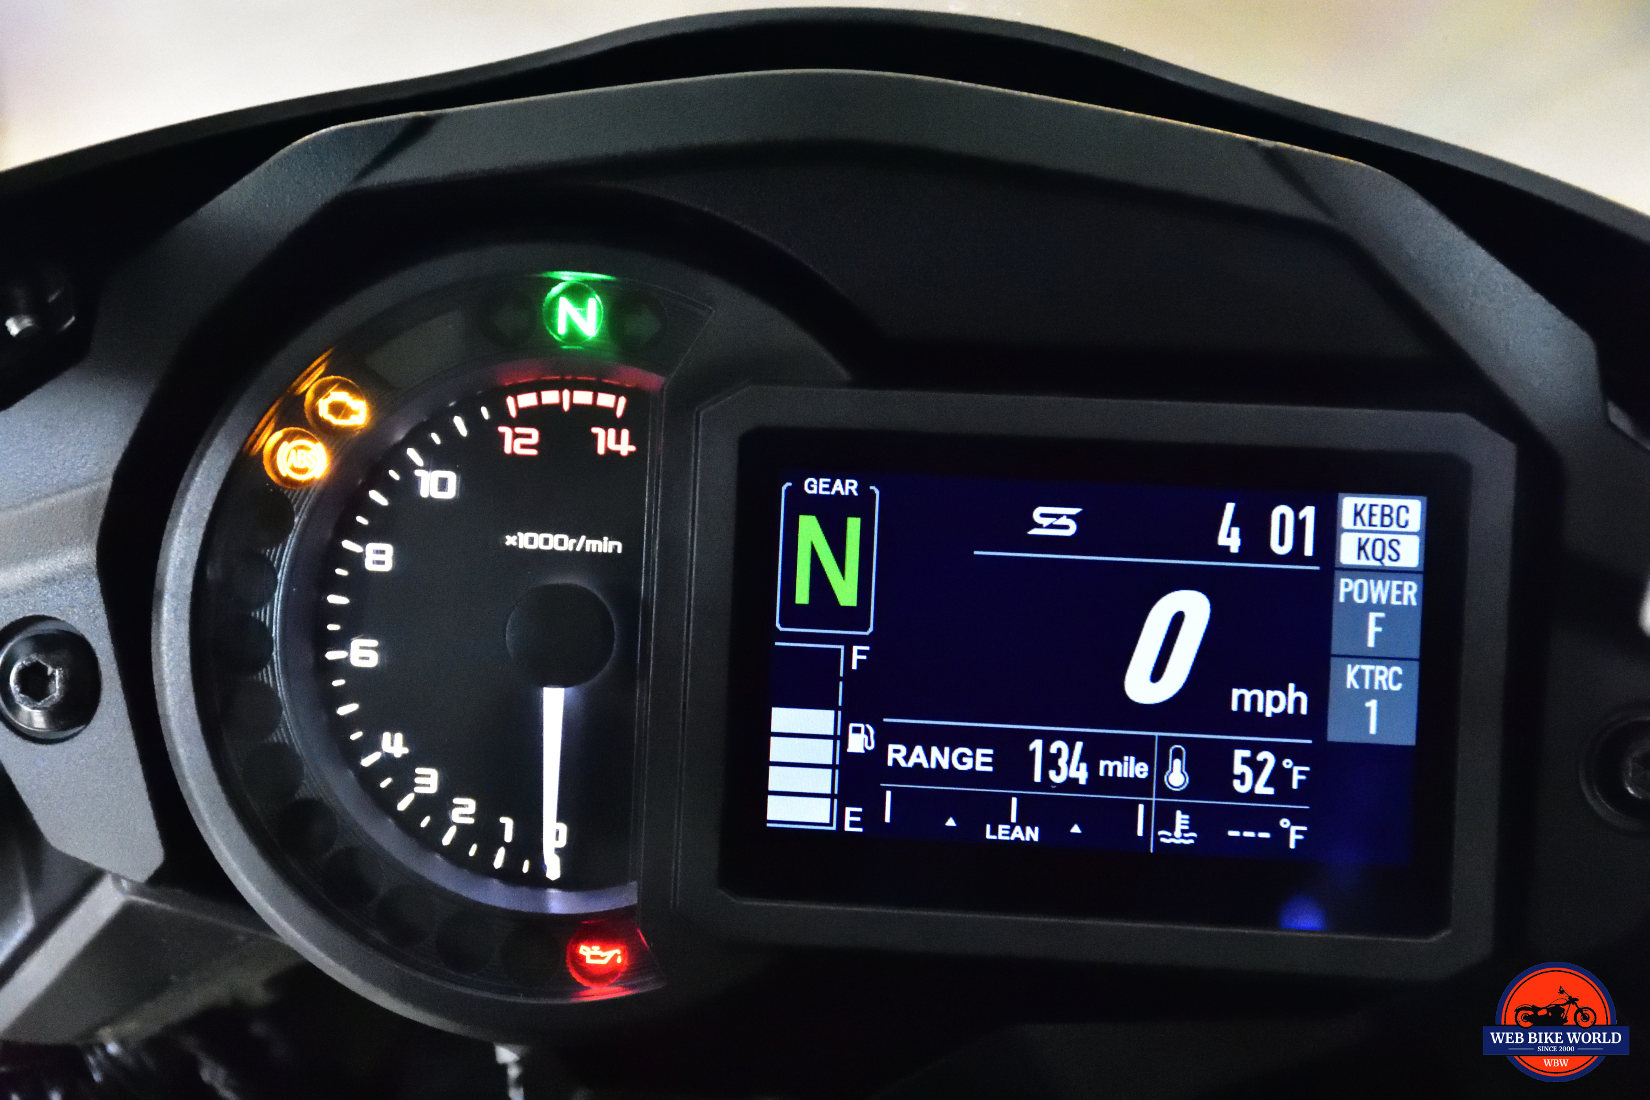 2018 Kawasaki Ninja H2SXSE gauges and TFT display.